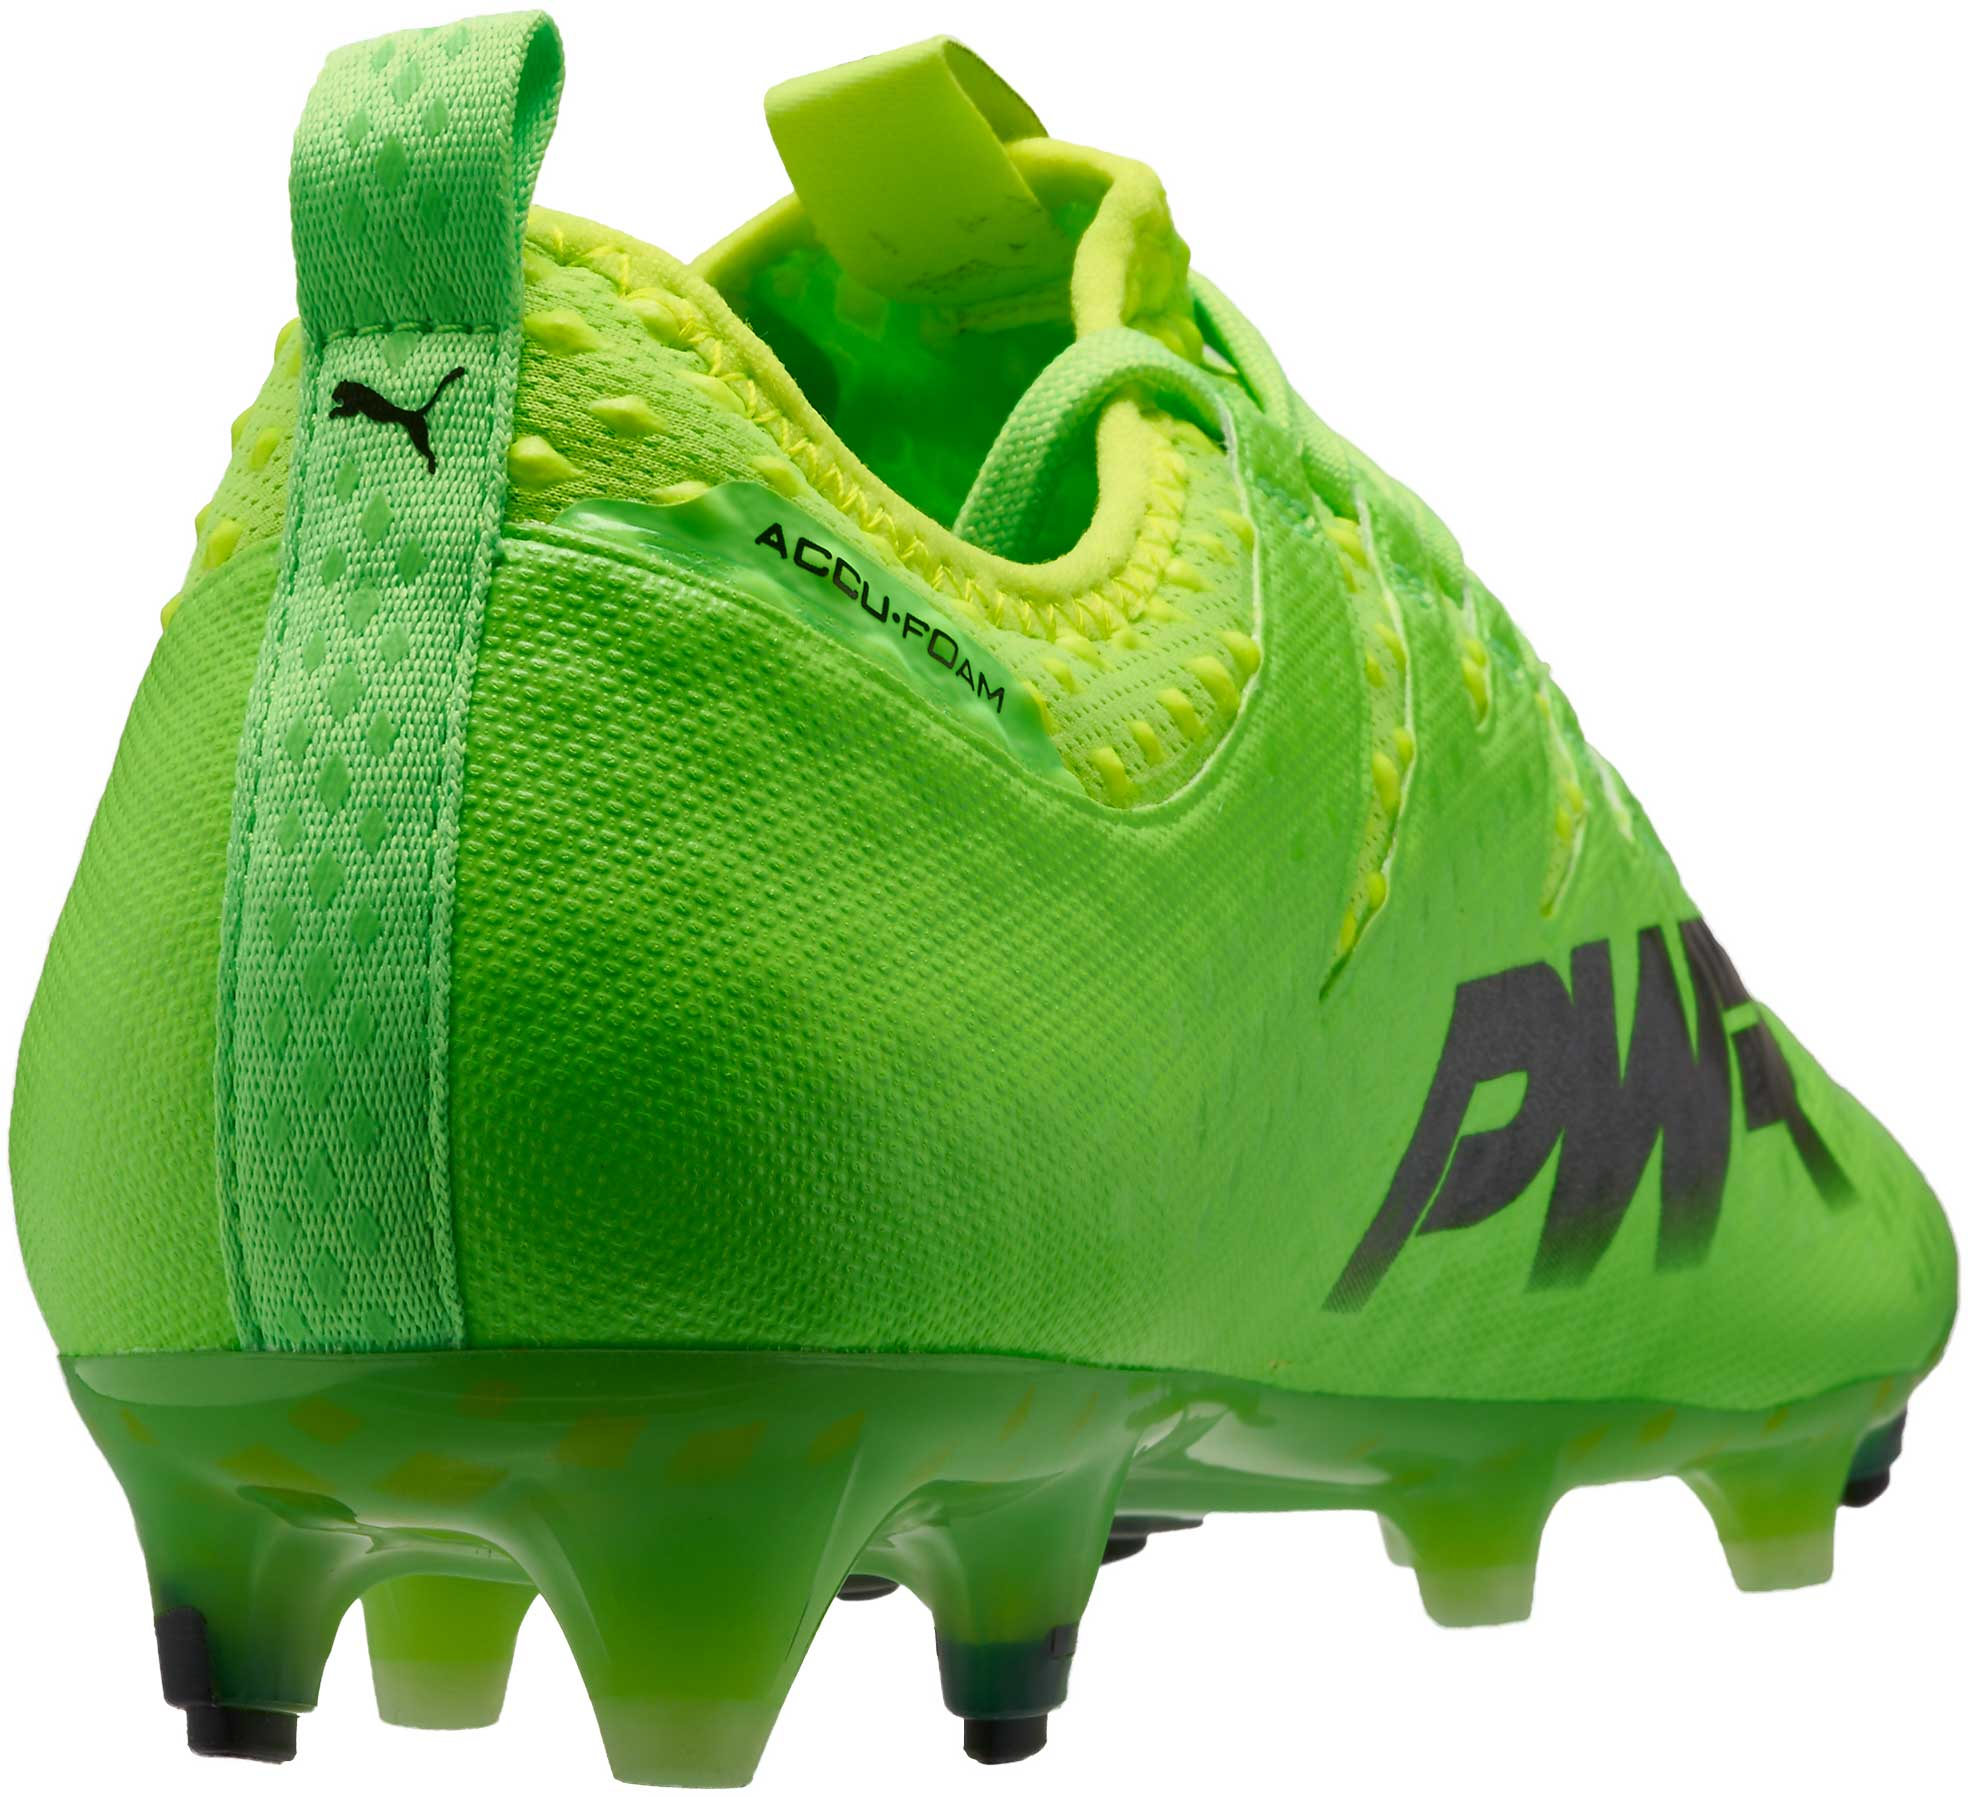 ab4fcbccc31 Puma evoPOWER Vigor 1 FG - Green Puma Soccer Cleats